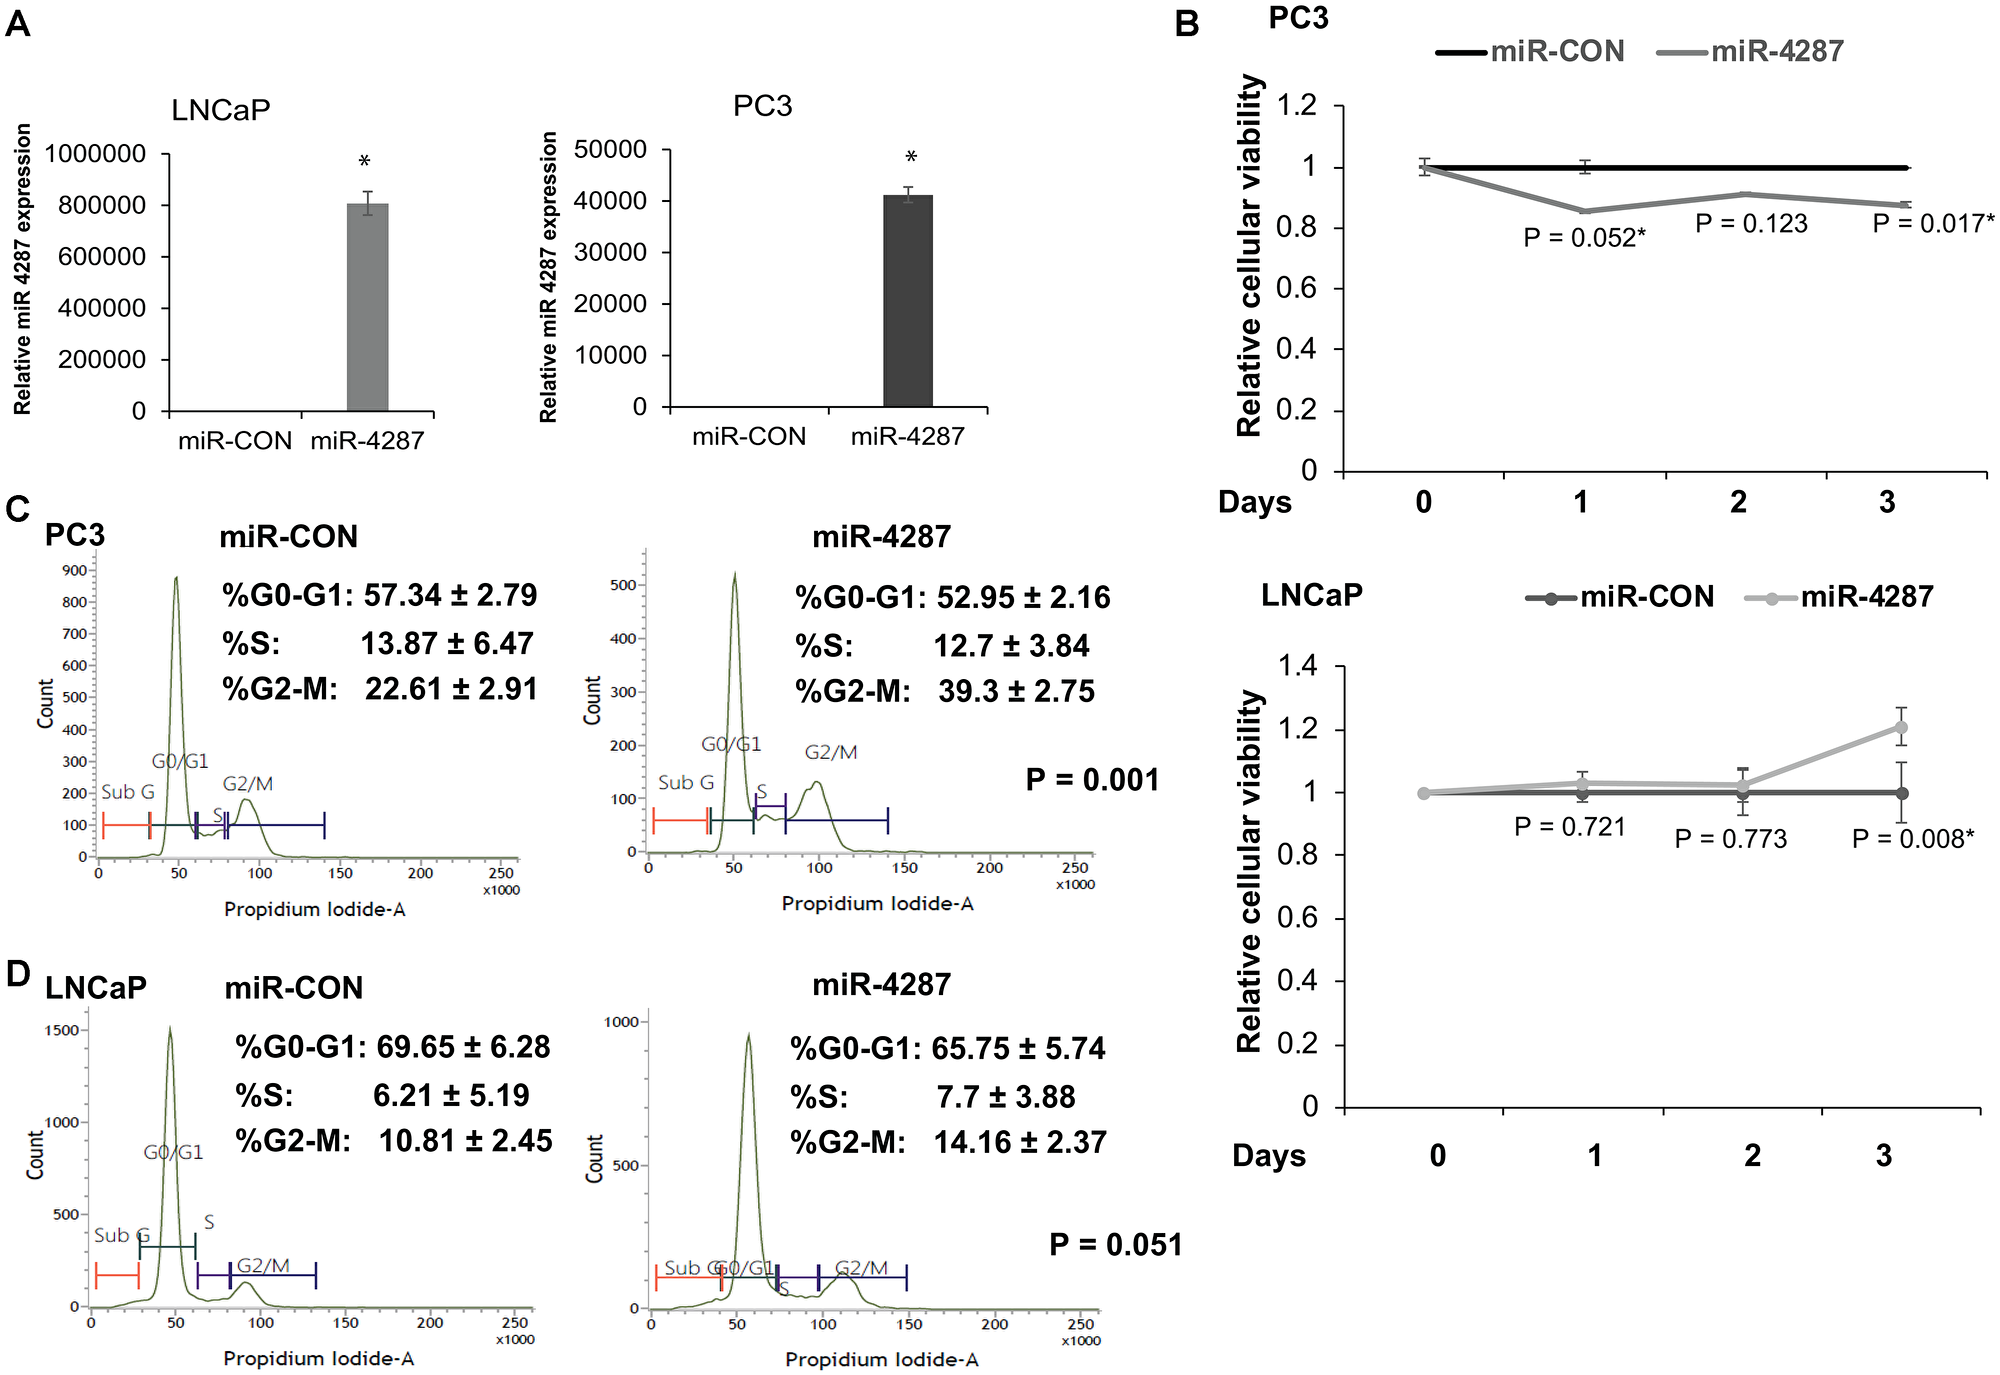 miR-4287 overexpression causes increase in G2/M phase in prostate cancer cell lines.